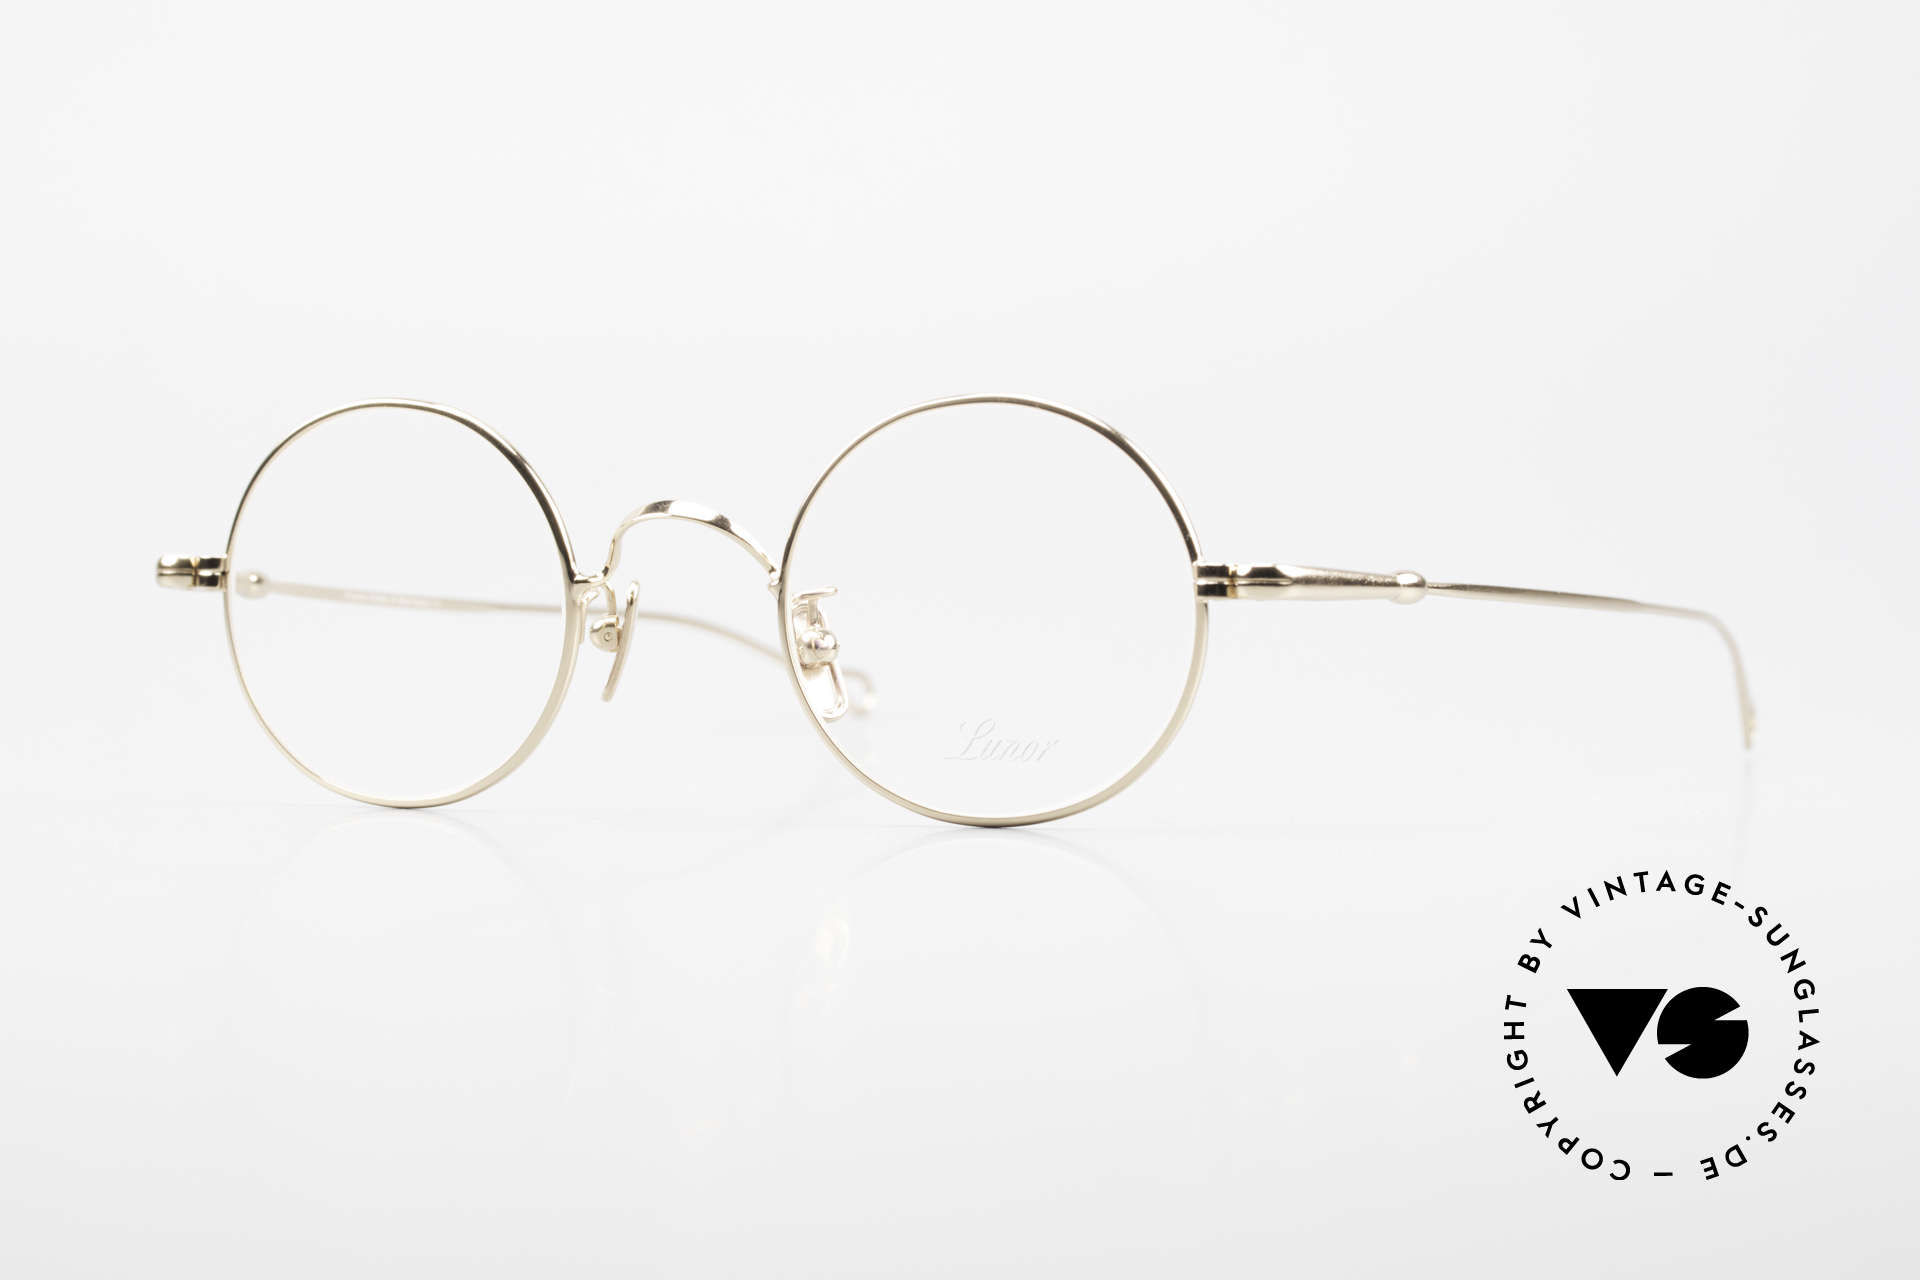 Lunor V 110 Lunor Round Glasses GP Gold, round Lunor metal glasses with pads made of pure titan, Made for Men and Women